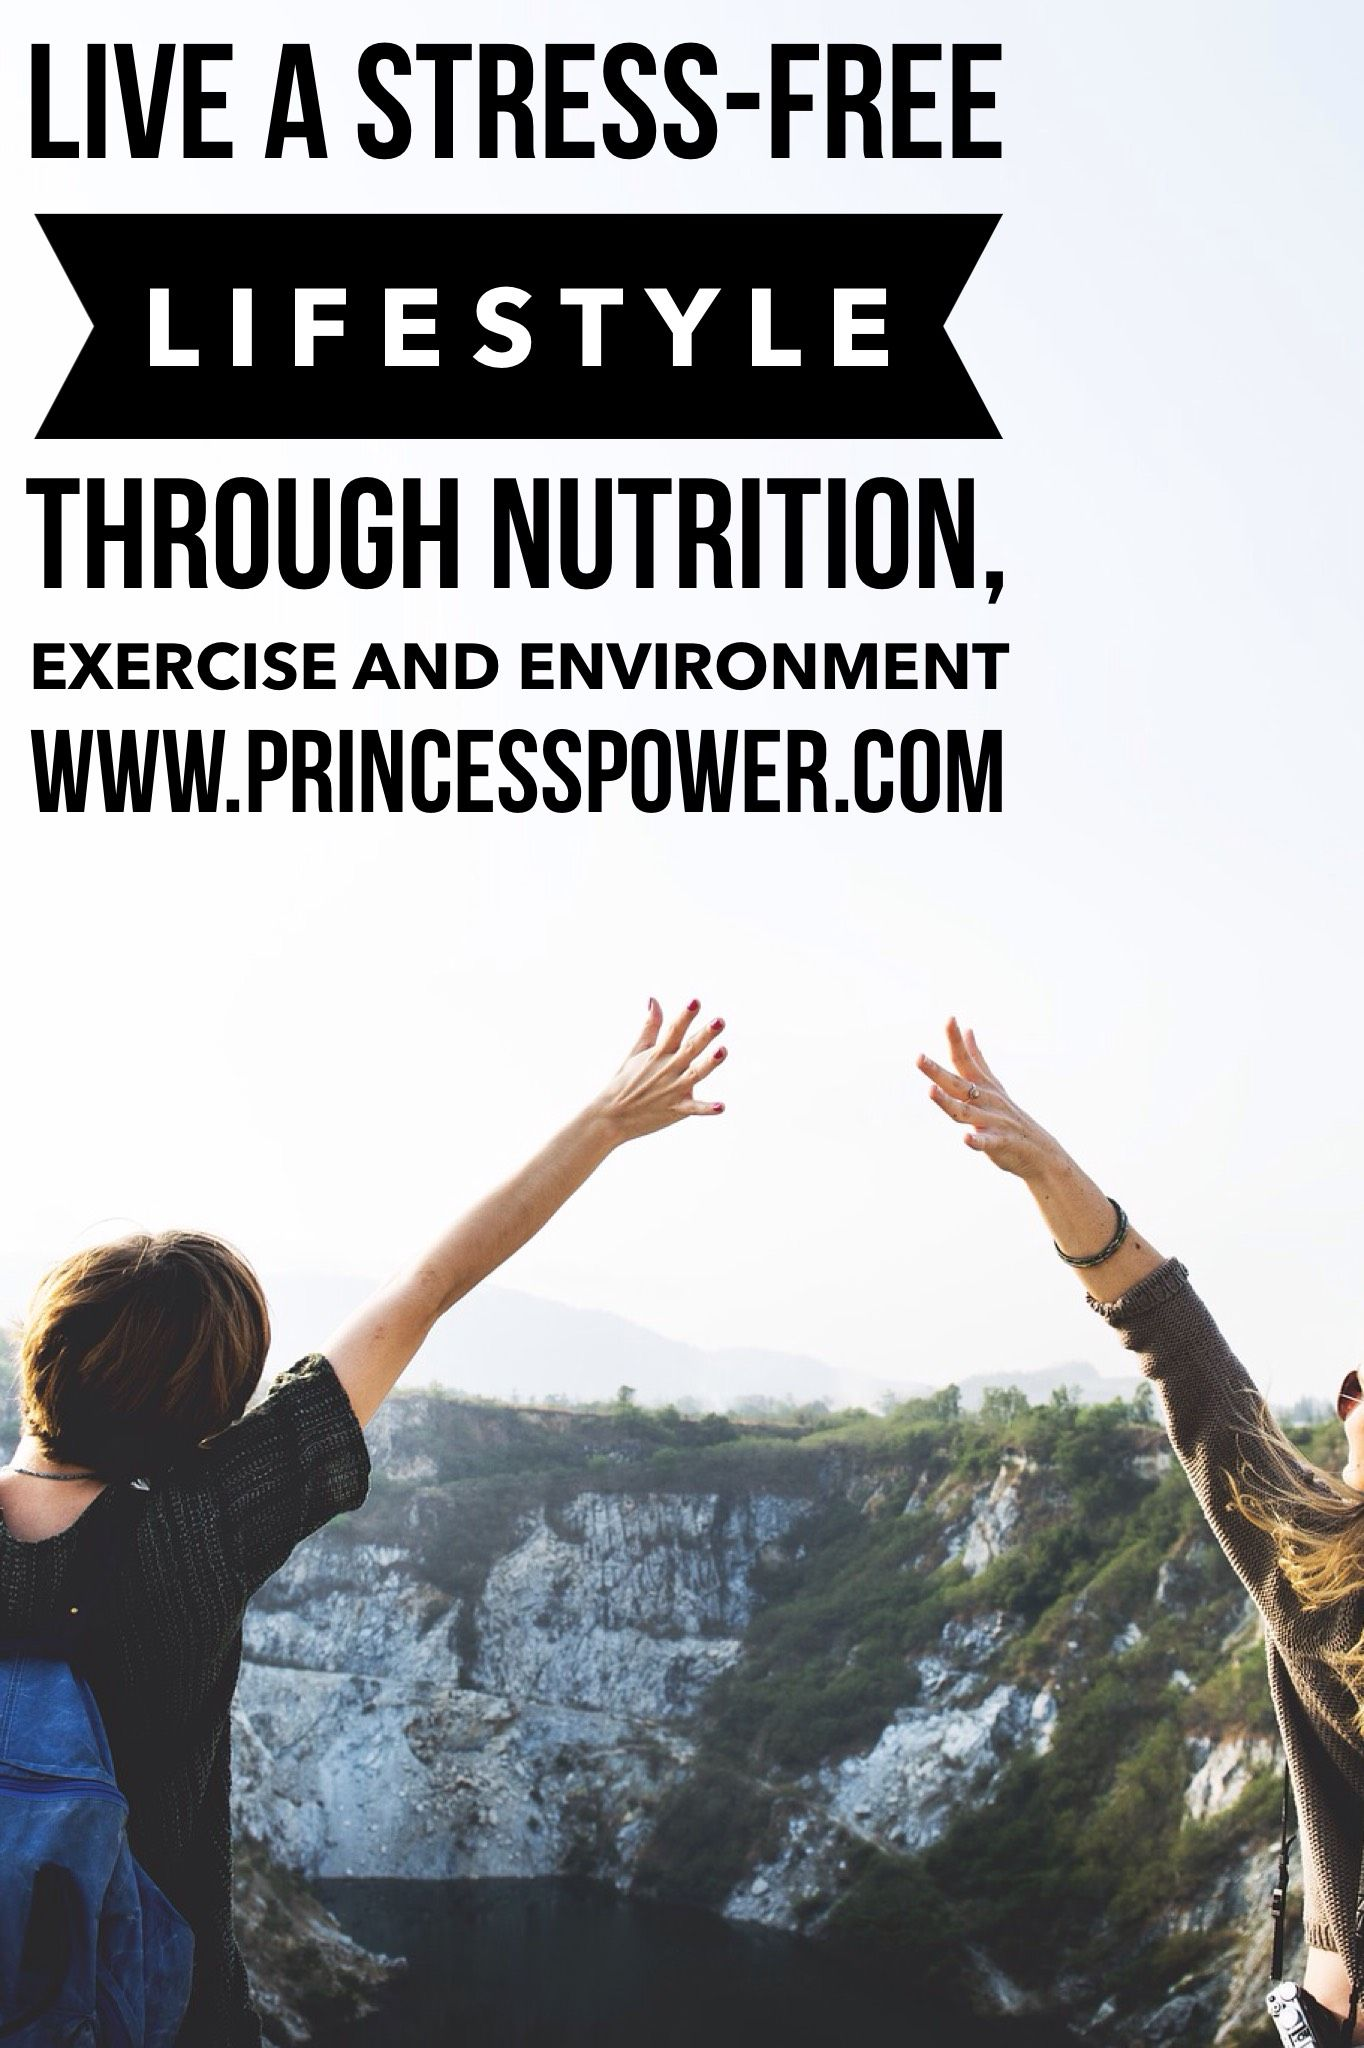 Live a stressfree lifestyle through nutrition exercise